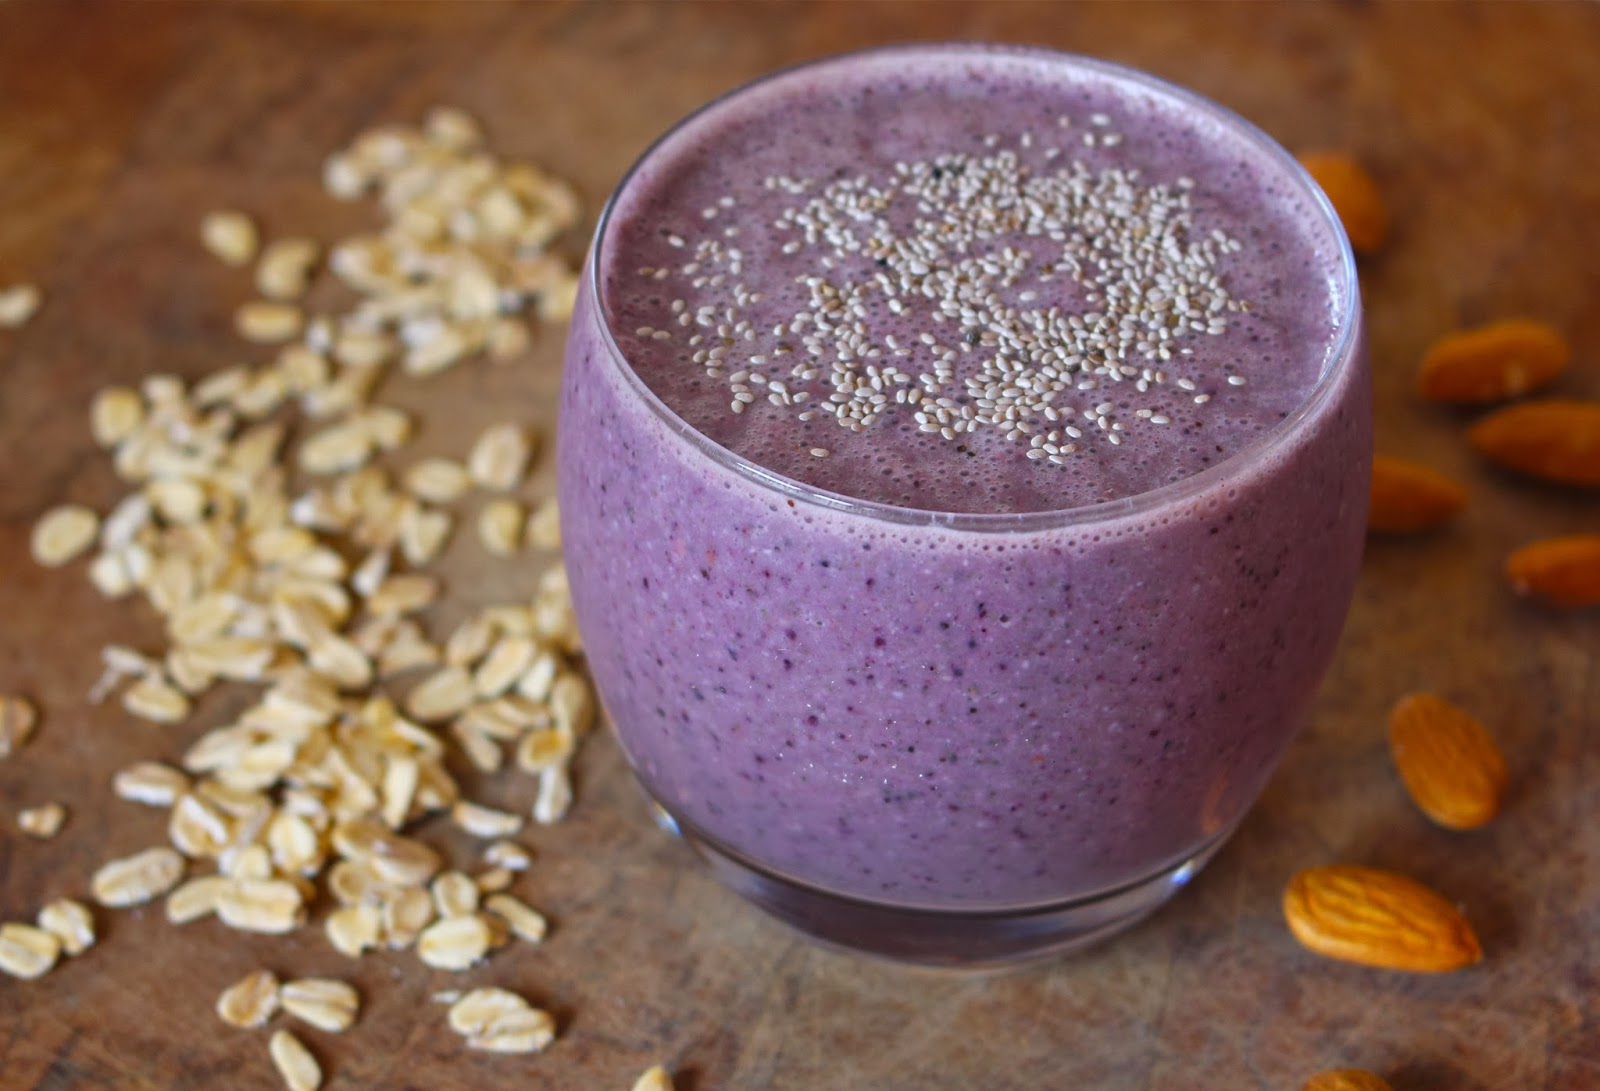 Incredibly Edible: Blueberry Breakfast Smoothie